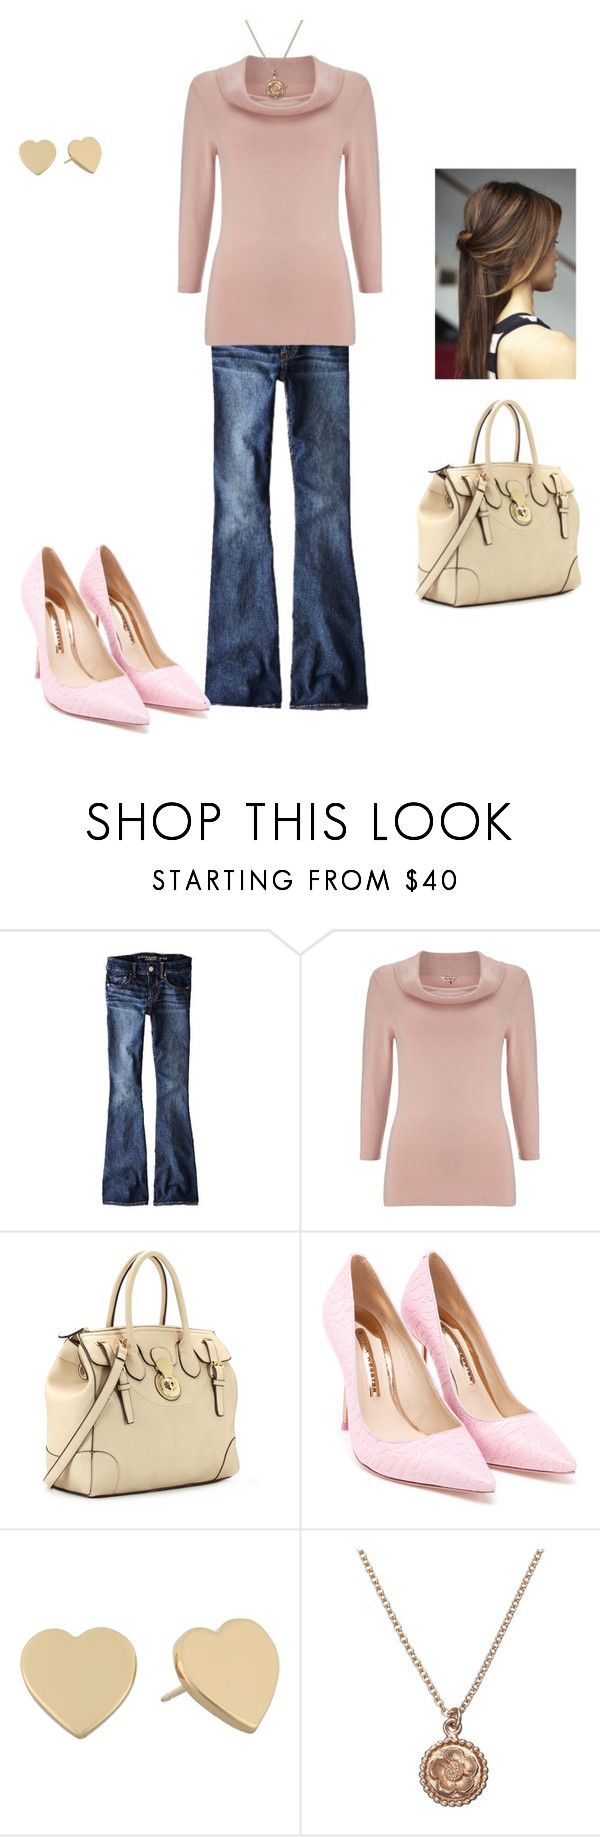 Cozy Winter Day by cindy-renee-miller on Polyvore featuring Phase Eight, American Eagle Outfitters, Sophia Webster, Kate Spade and Alex Monroe